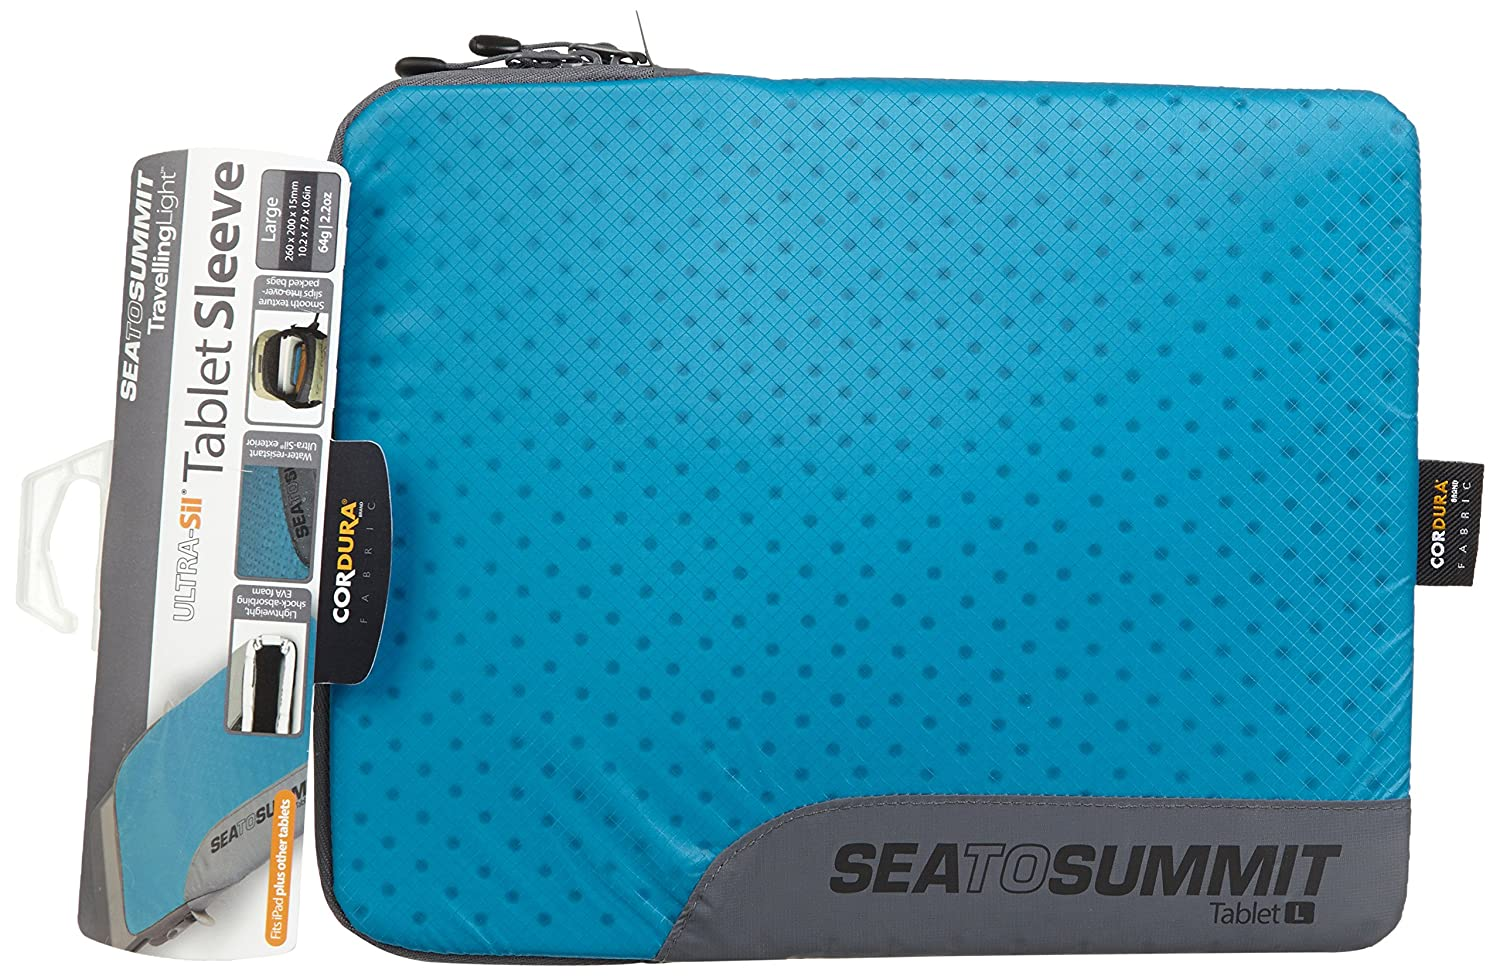 Amazon.com: Sea To Summit Travelling Light Tablet Sleeve, Pacific Blue, Small: Sea to Summit: Home & Kitchen